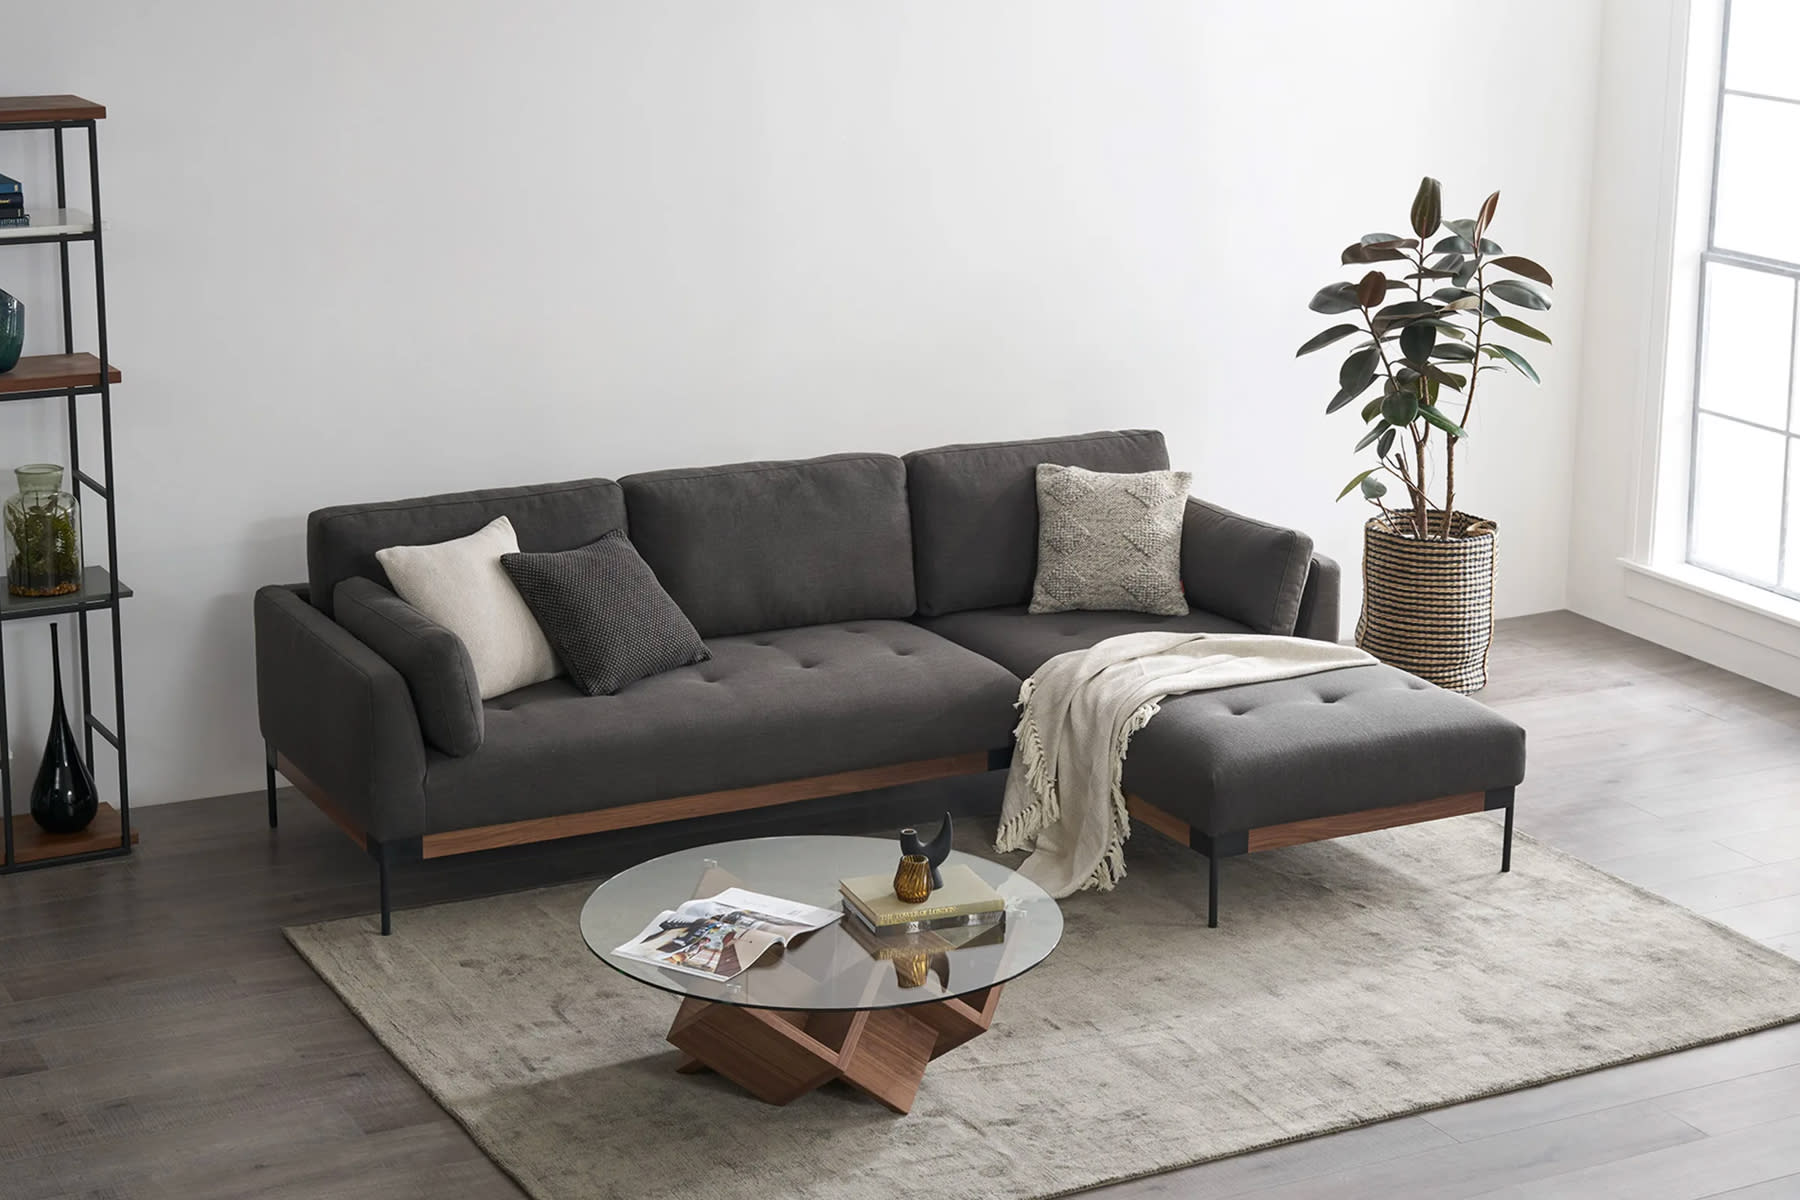 sectional sofa, coffee table and potted plant in a bright living room